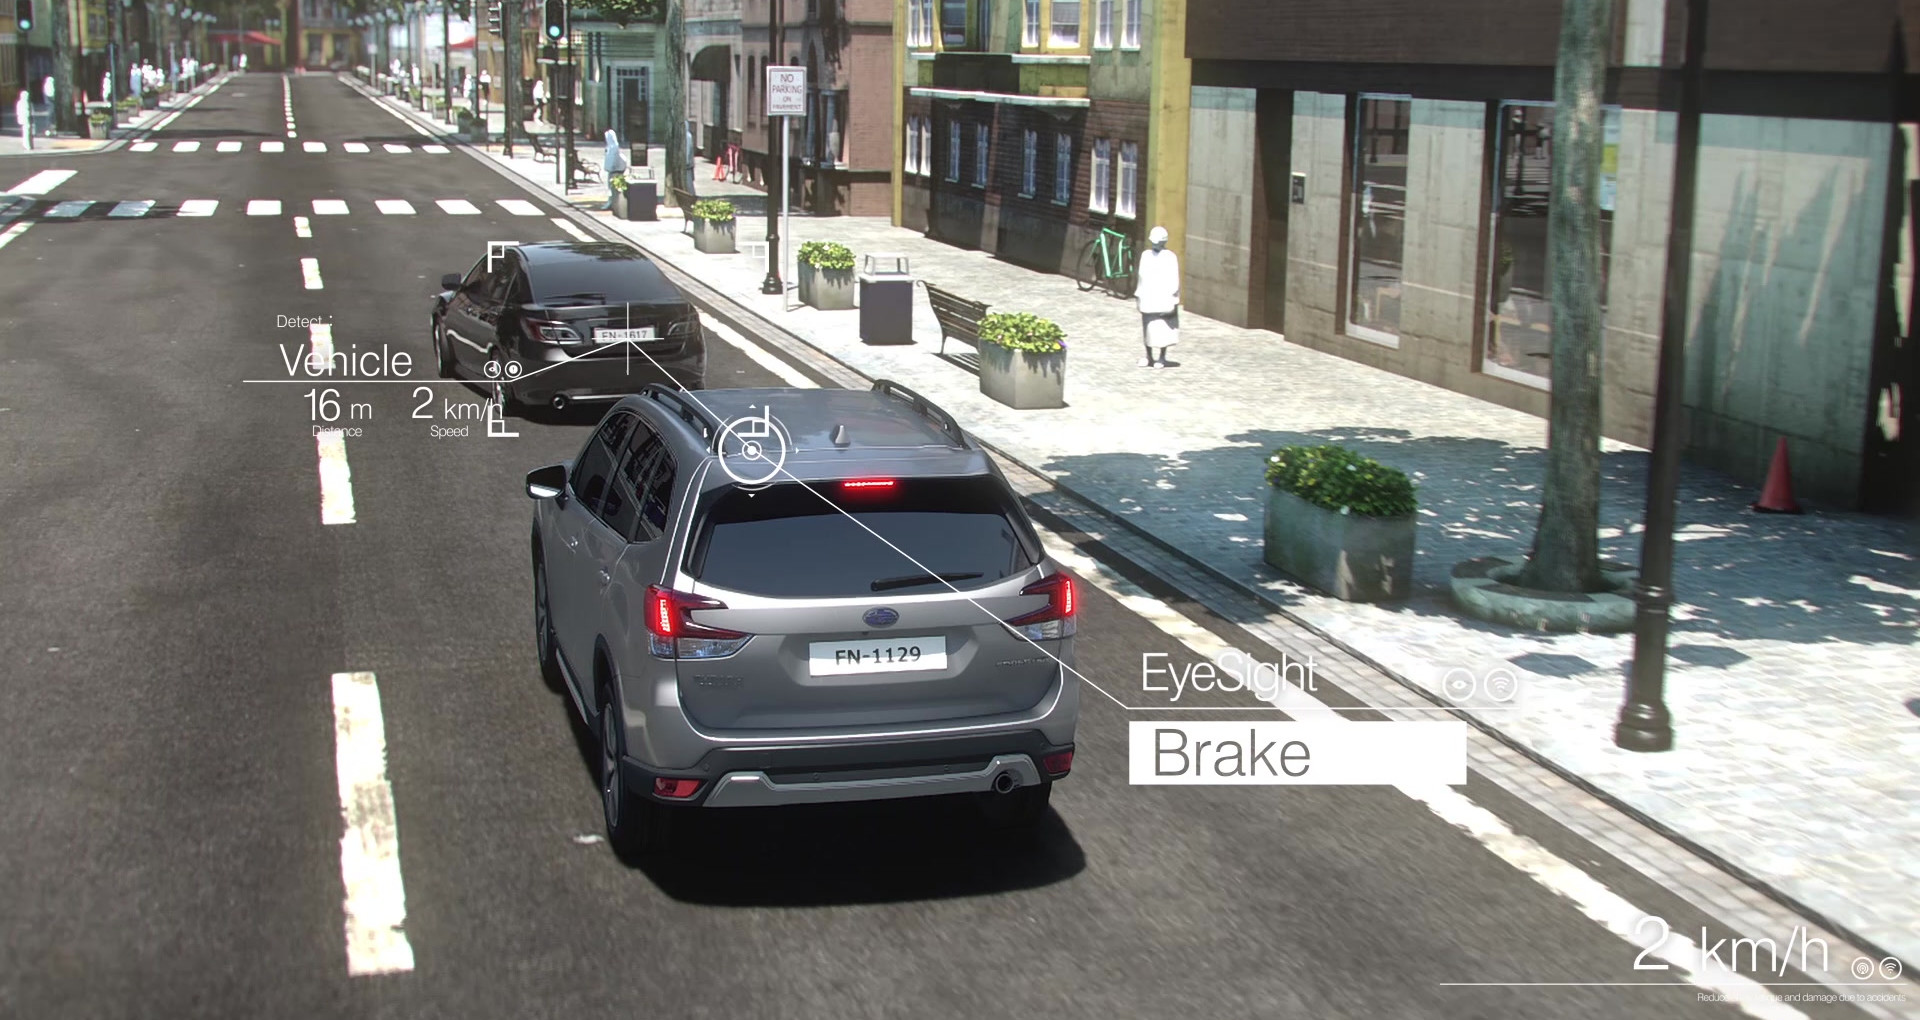 Emergency Braking Assist